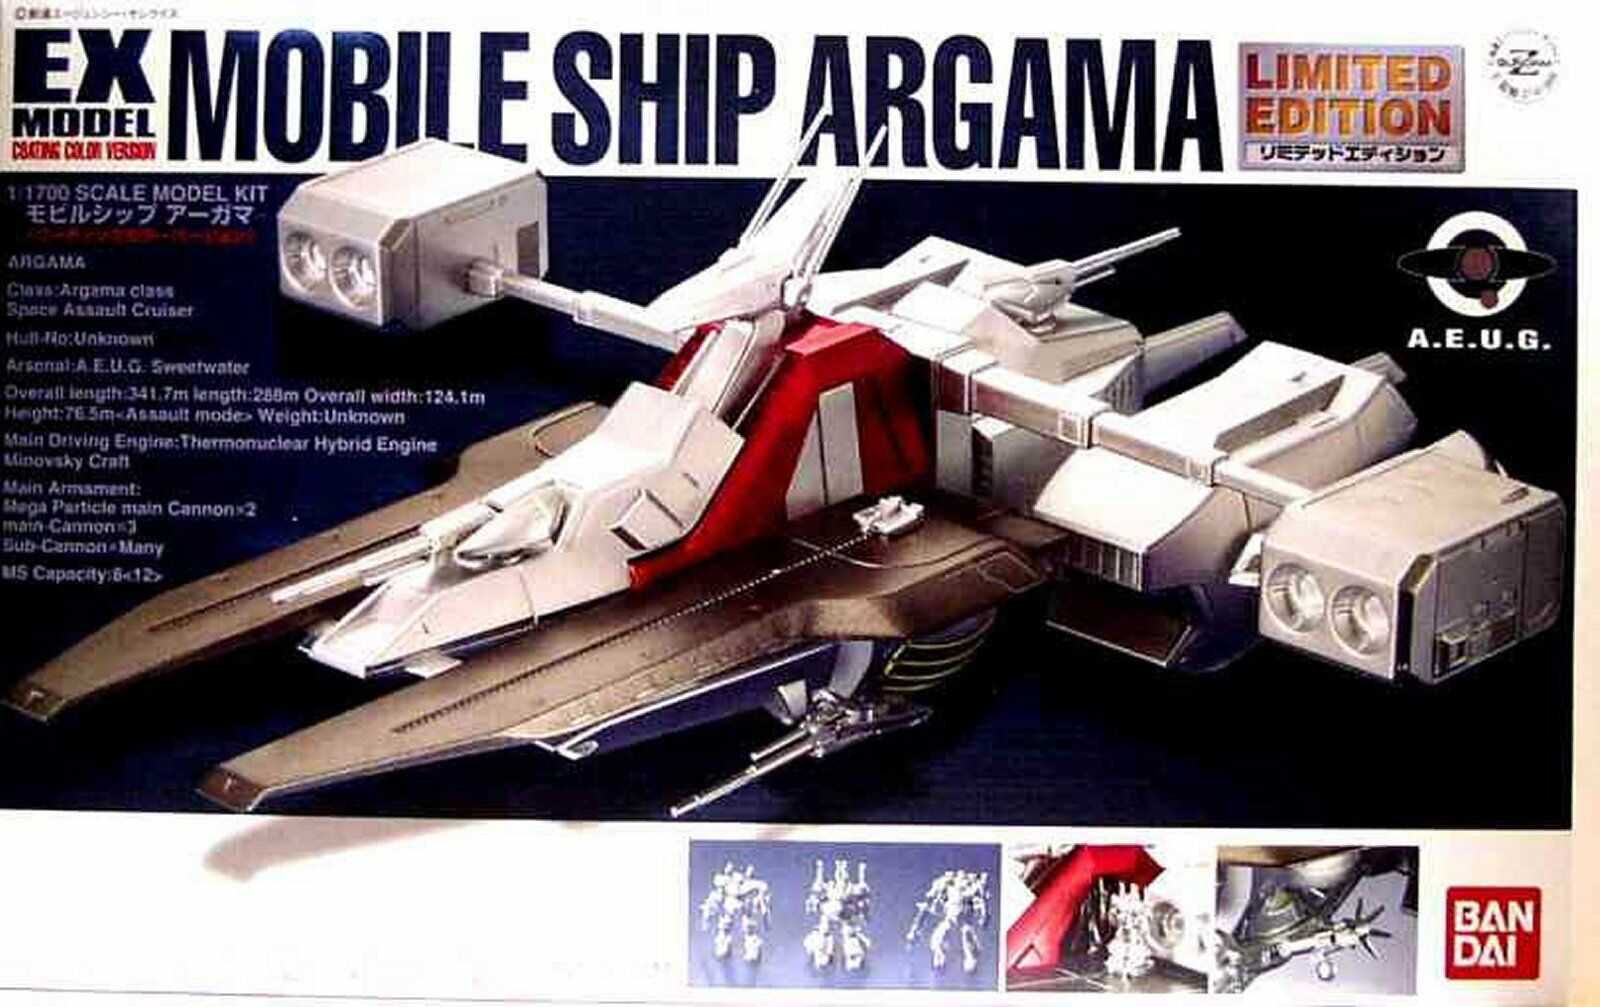 EX MODEL MOBILE SHIP ARGAMA LIMITED EDITION 1 1700 SCALE MODEL KIT